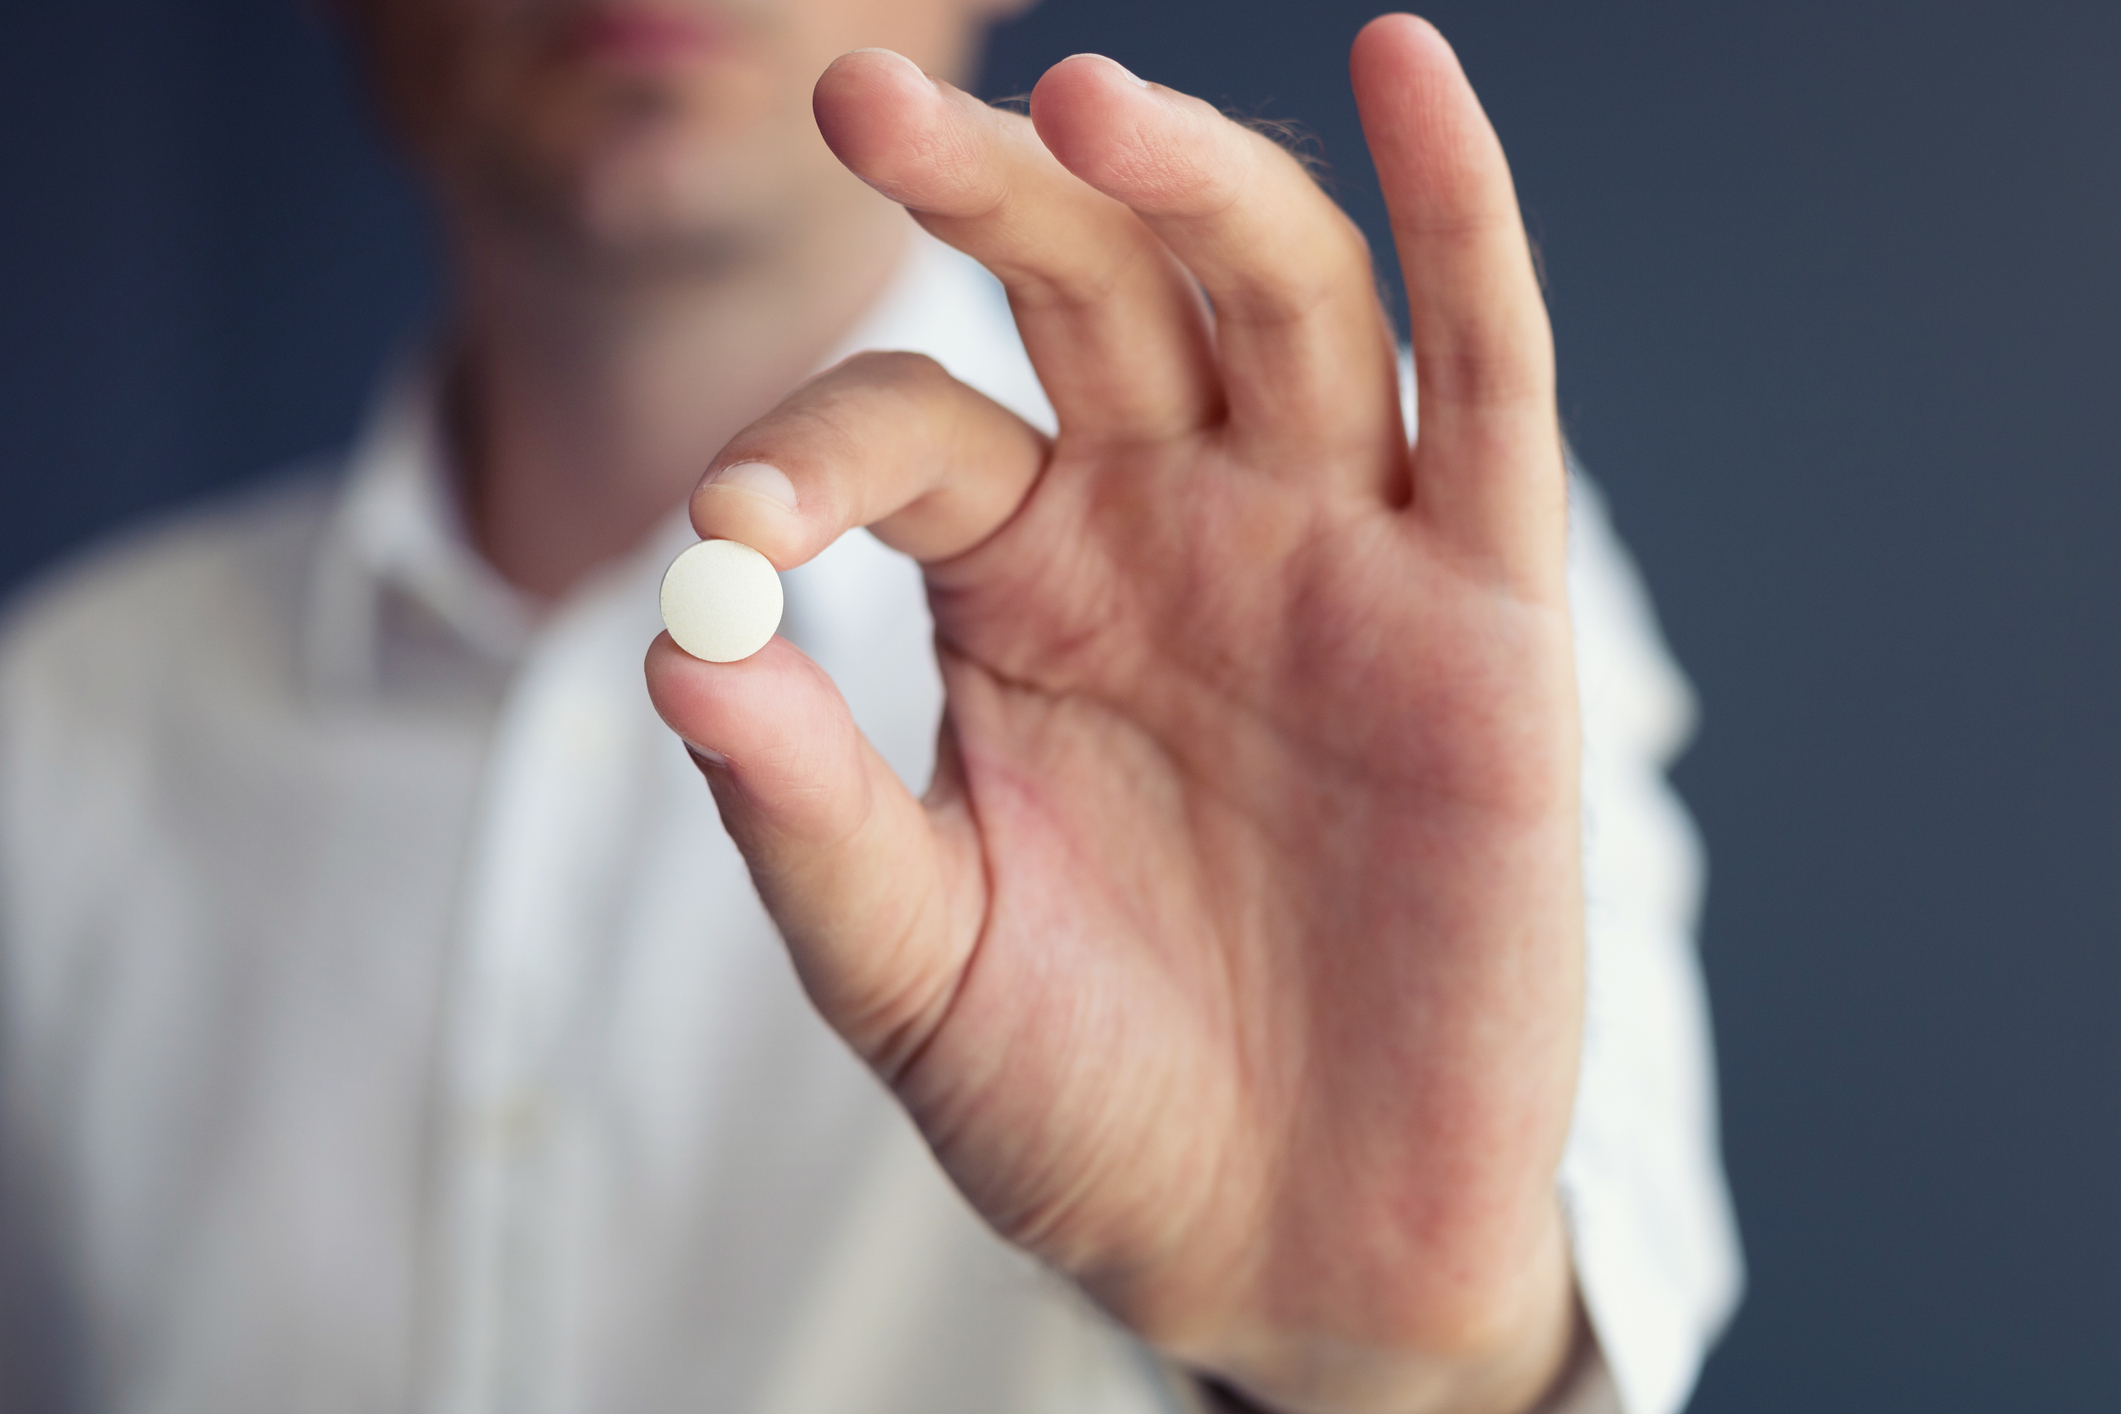 Article image for Supercharged pain relief: Melbourne researchers find way to make painkillers five times more effective